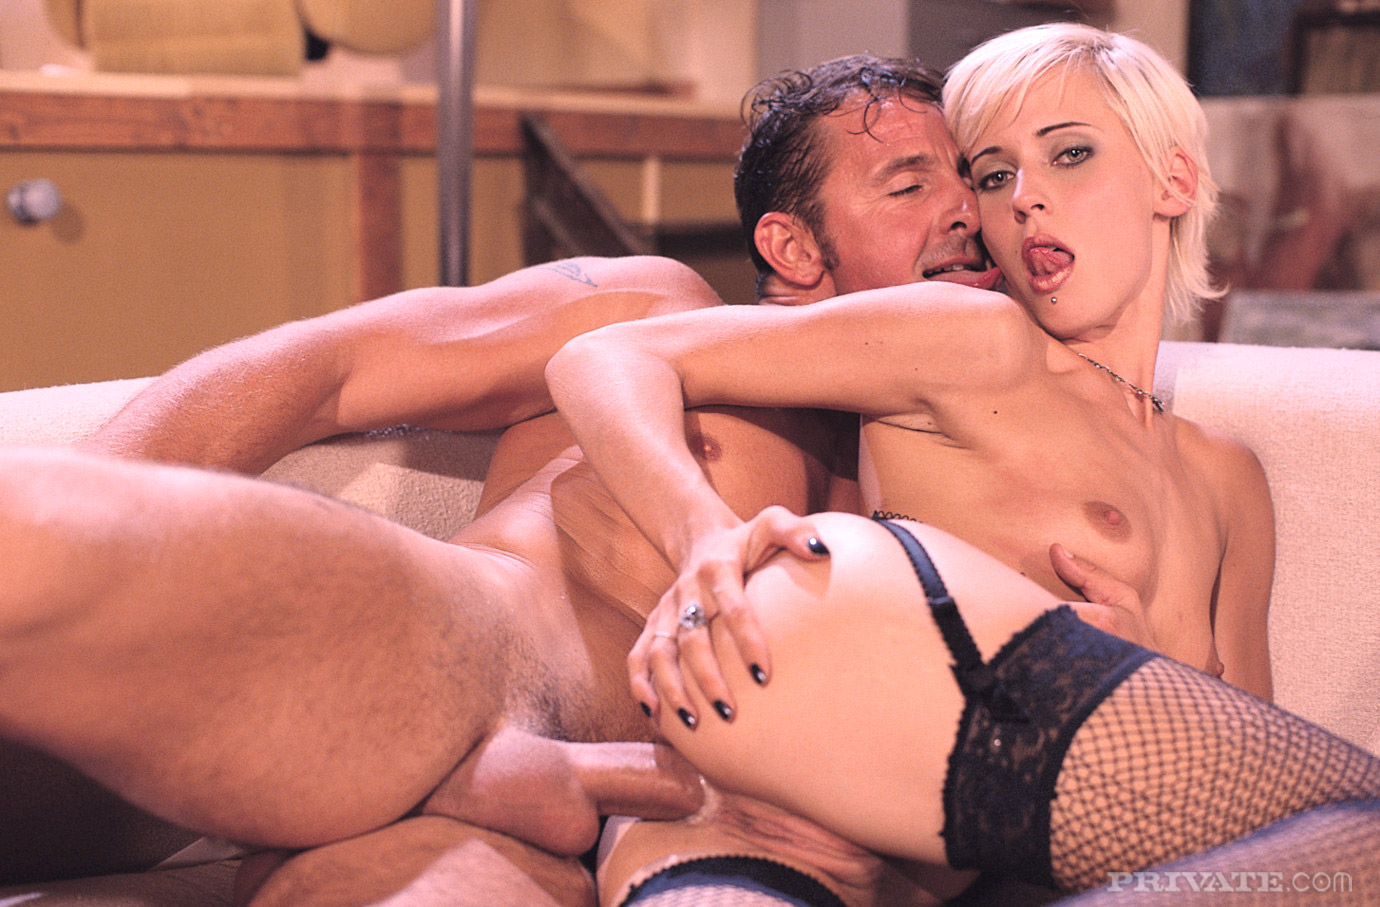 Download hot sexy black widow porn video nude images